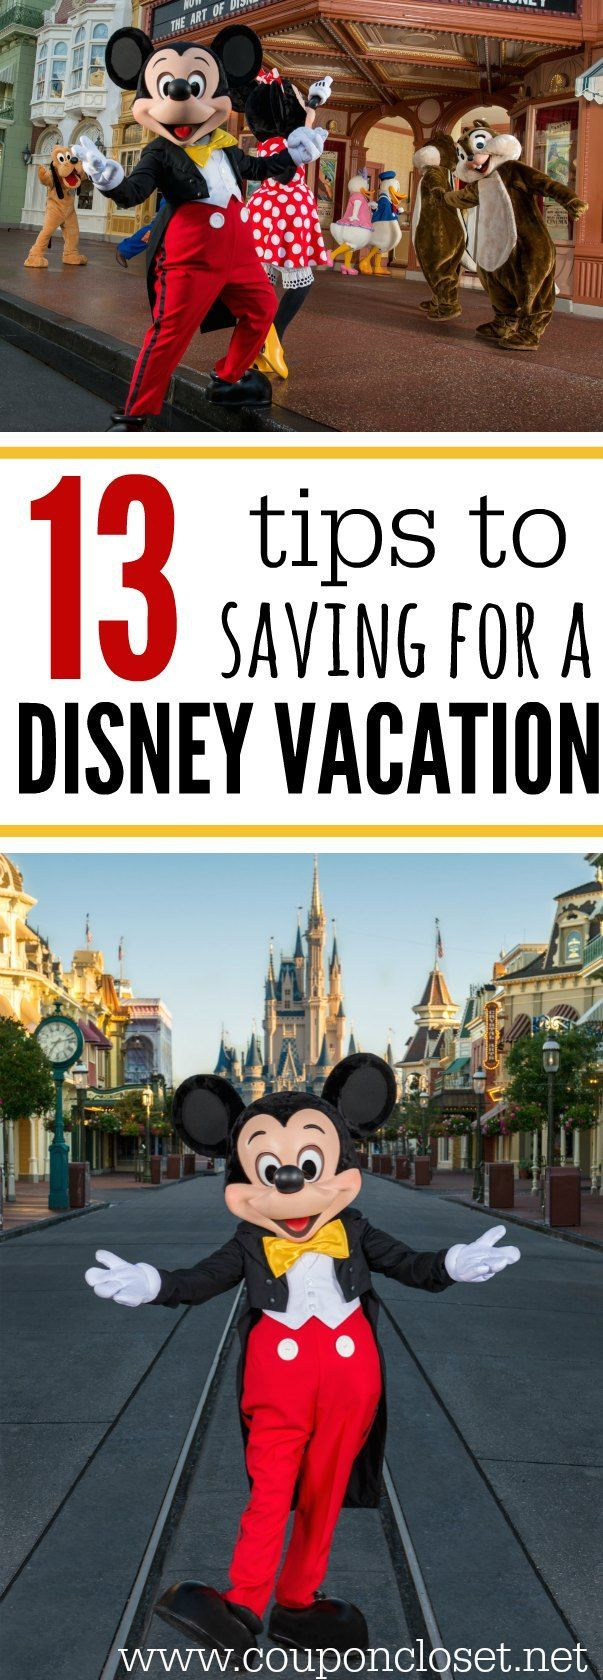 Wanting to go to Disney World? Here are 13 Tips to Saving for Disney World Vacation.